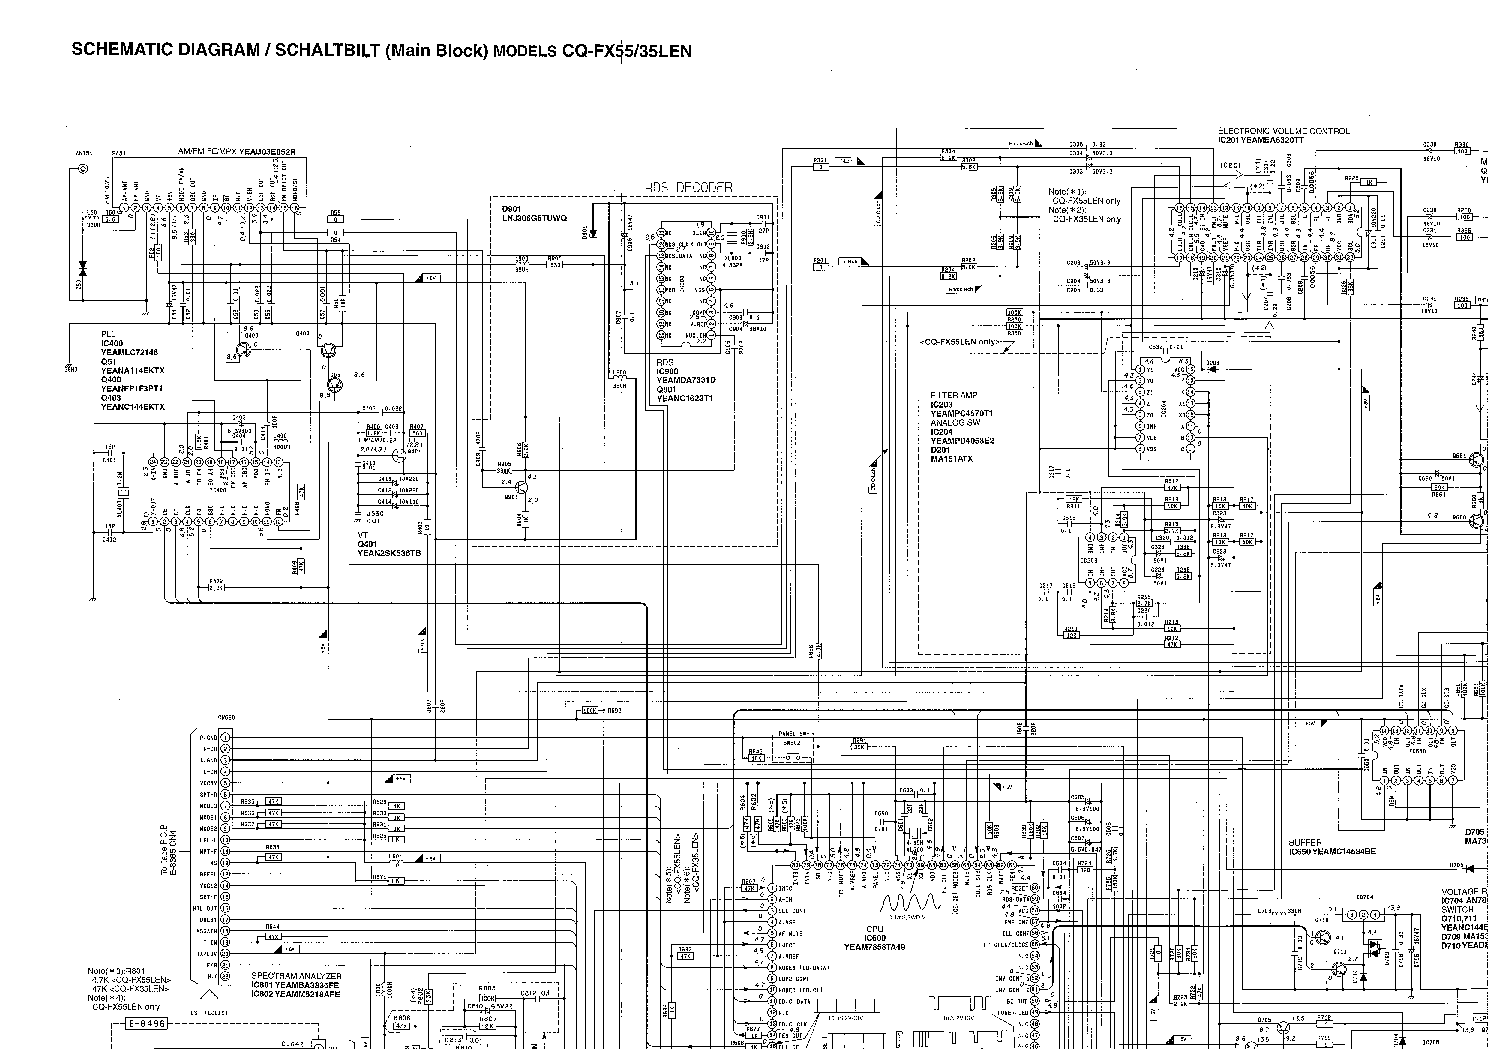 panasonic cq fx35 55len main sch service manual download schematics rh elektrotanya com